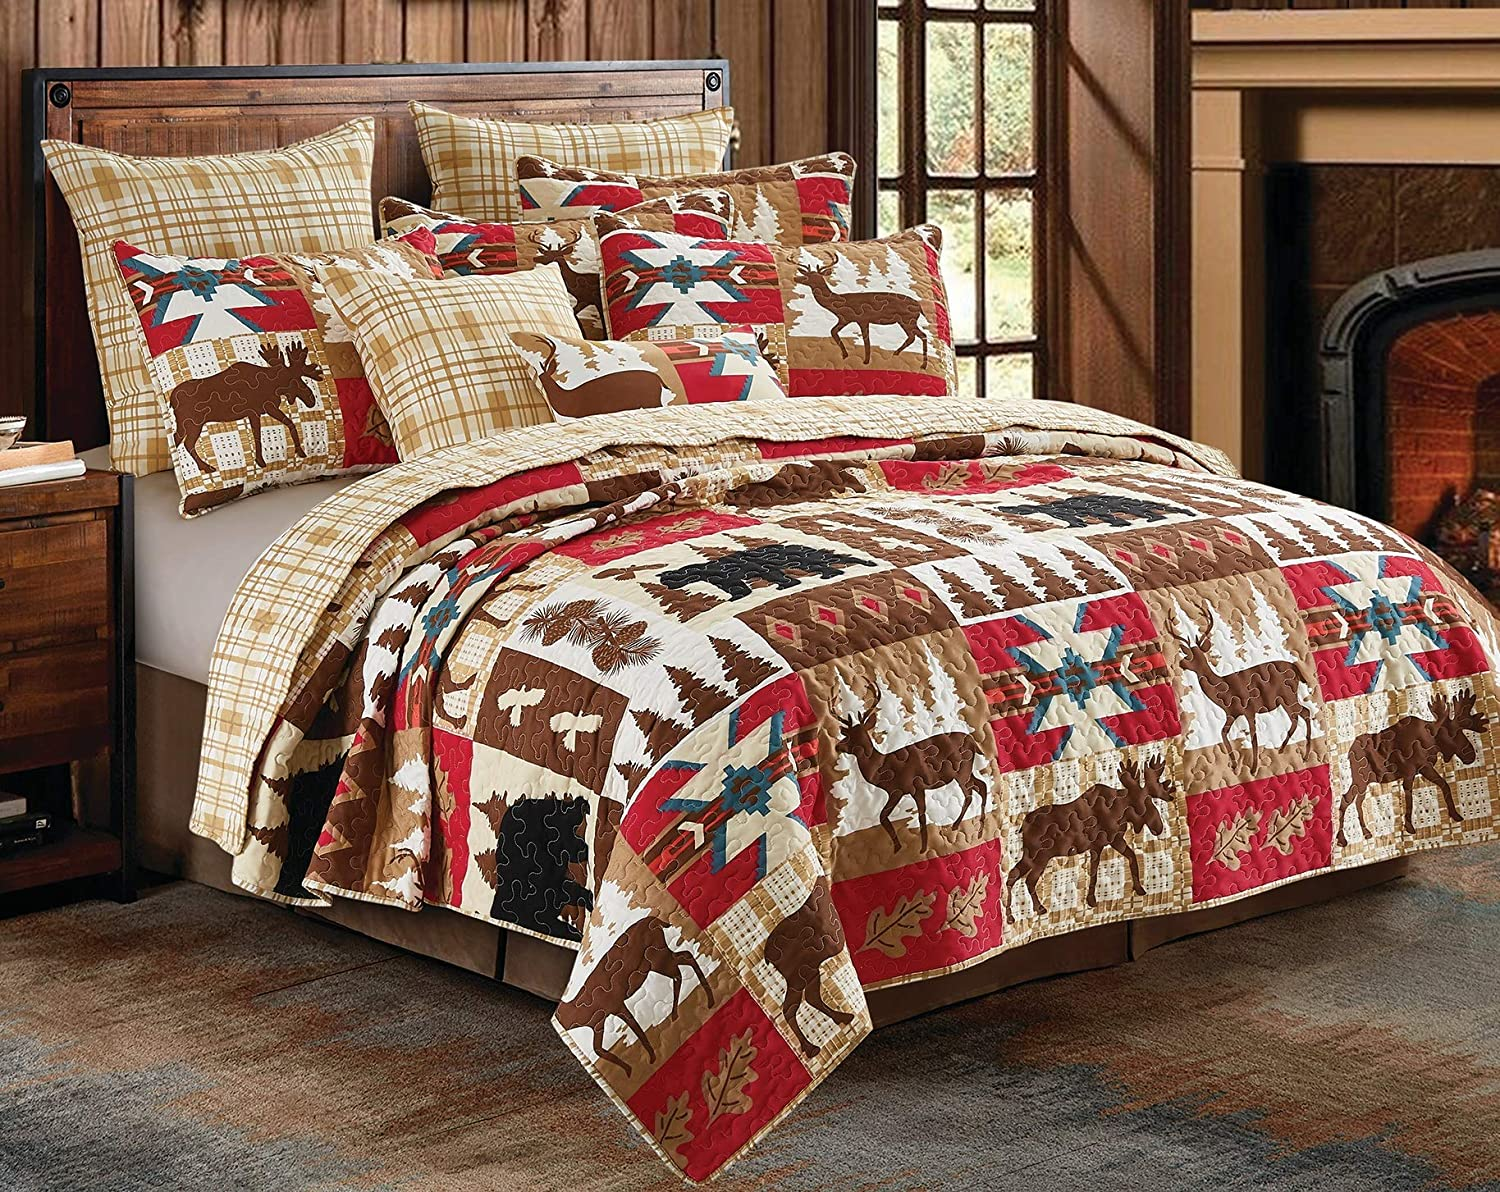 Virah Bella 3 Piece Wildlife Watch Full / Queen Quilt Set, Southwestern Bear Deer Moose